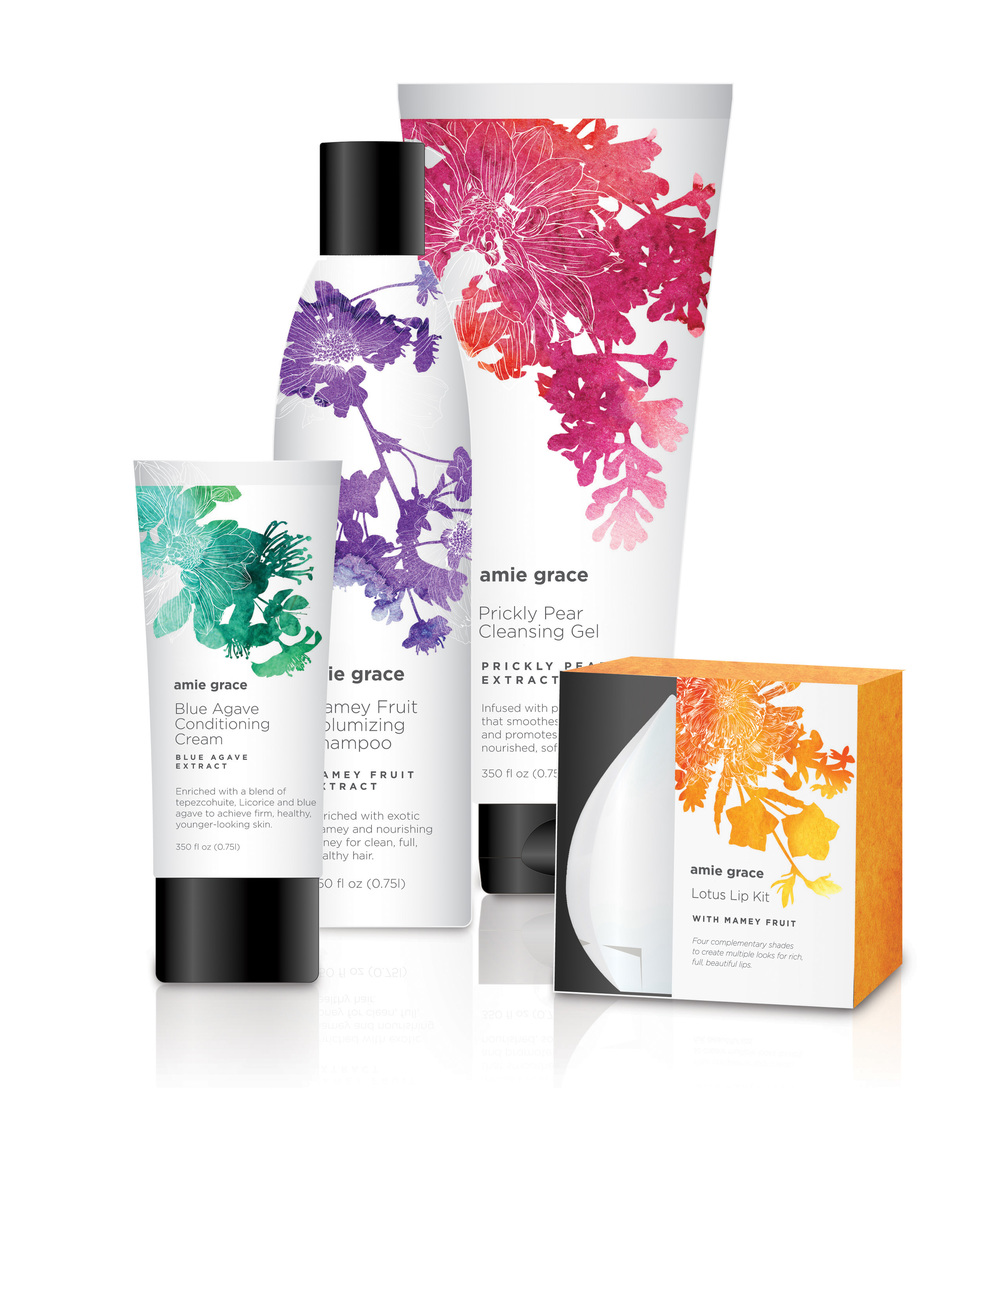 Amie Grace haircare and skin products concept developed for CVS/pharmacy.